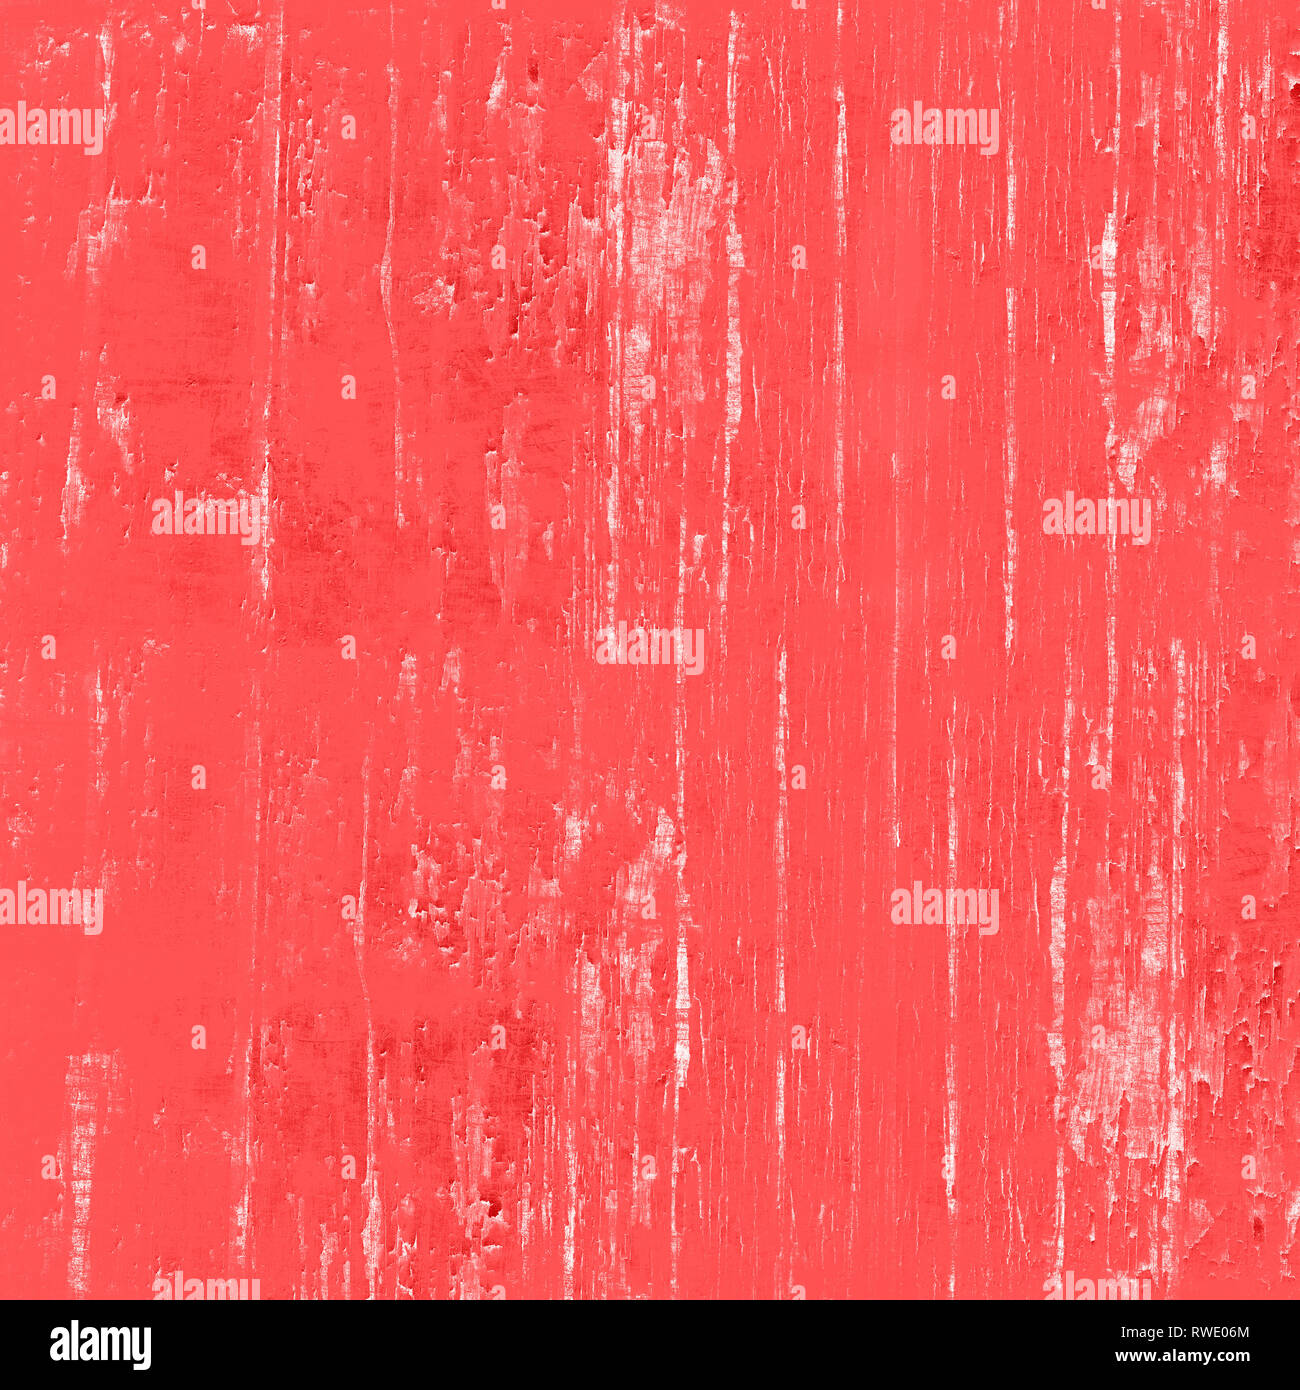 Living coral high resolution colored background with white, orange and pink paint splatters grunge texture. - Stock Image